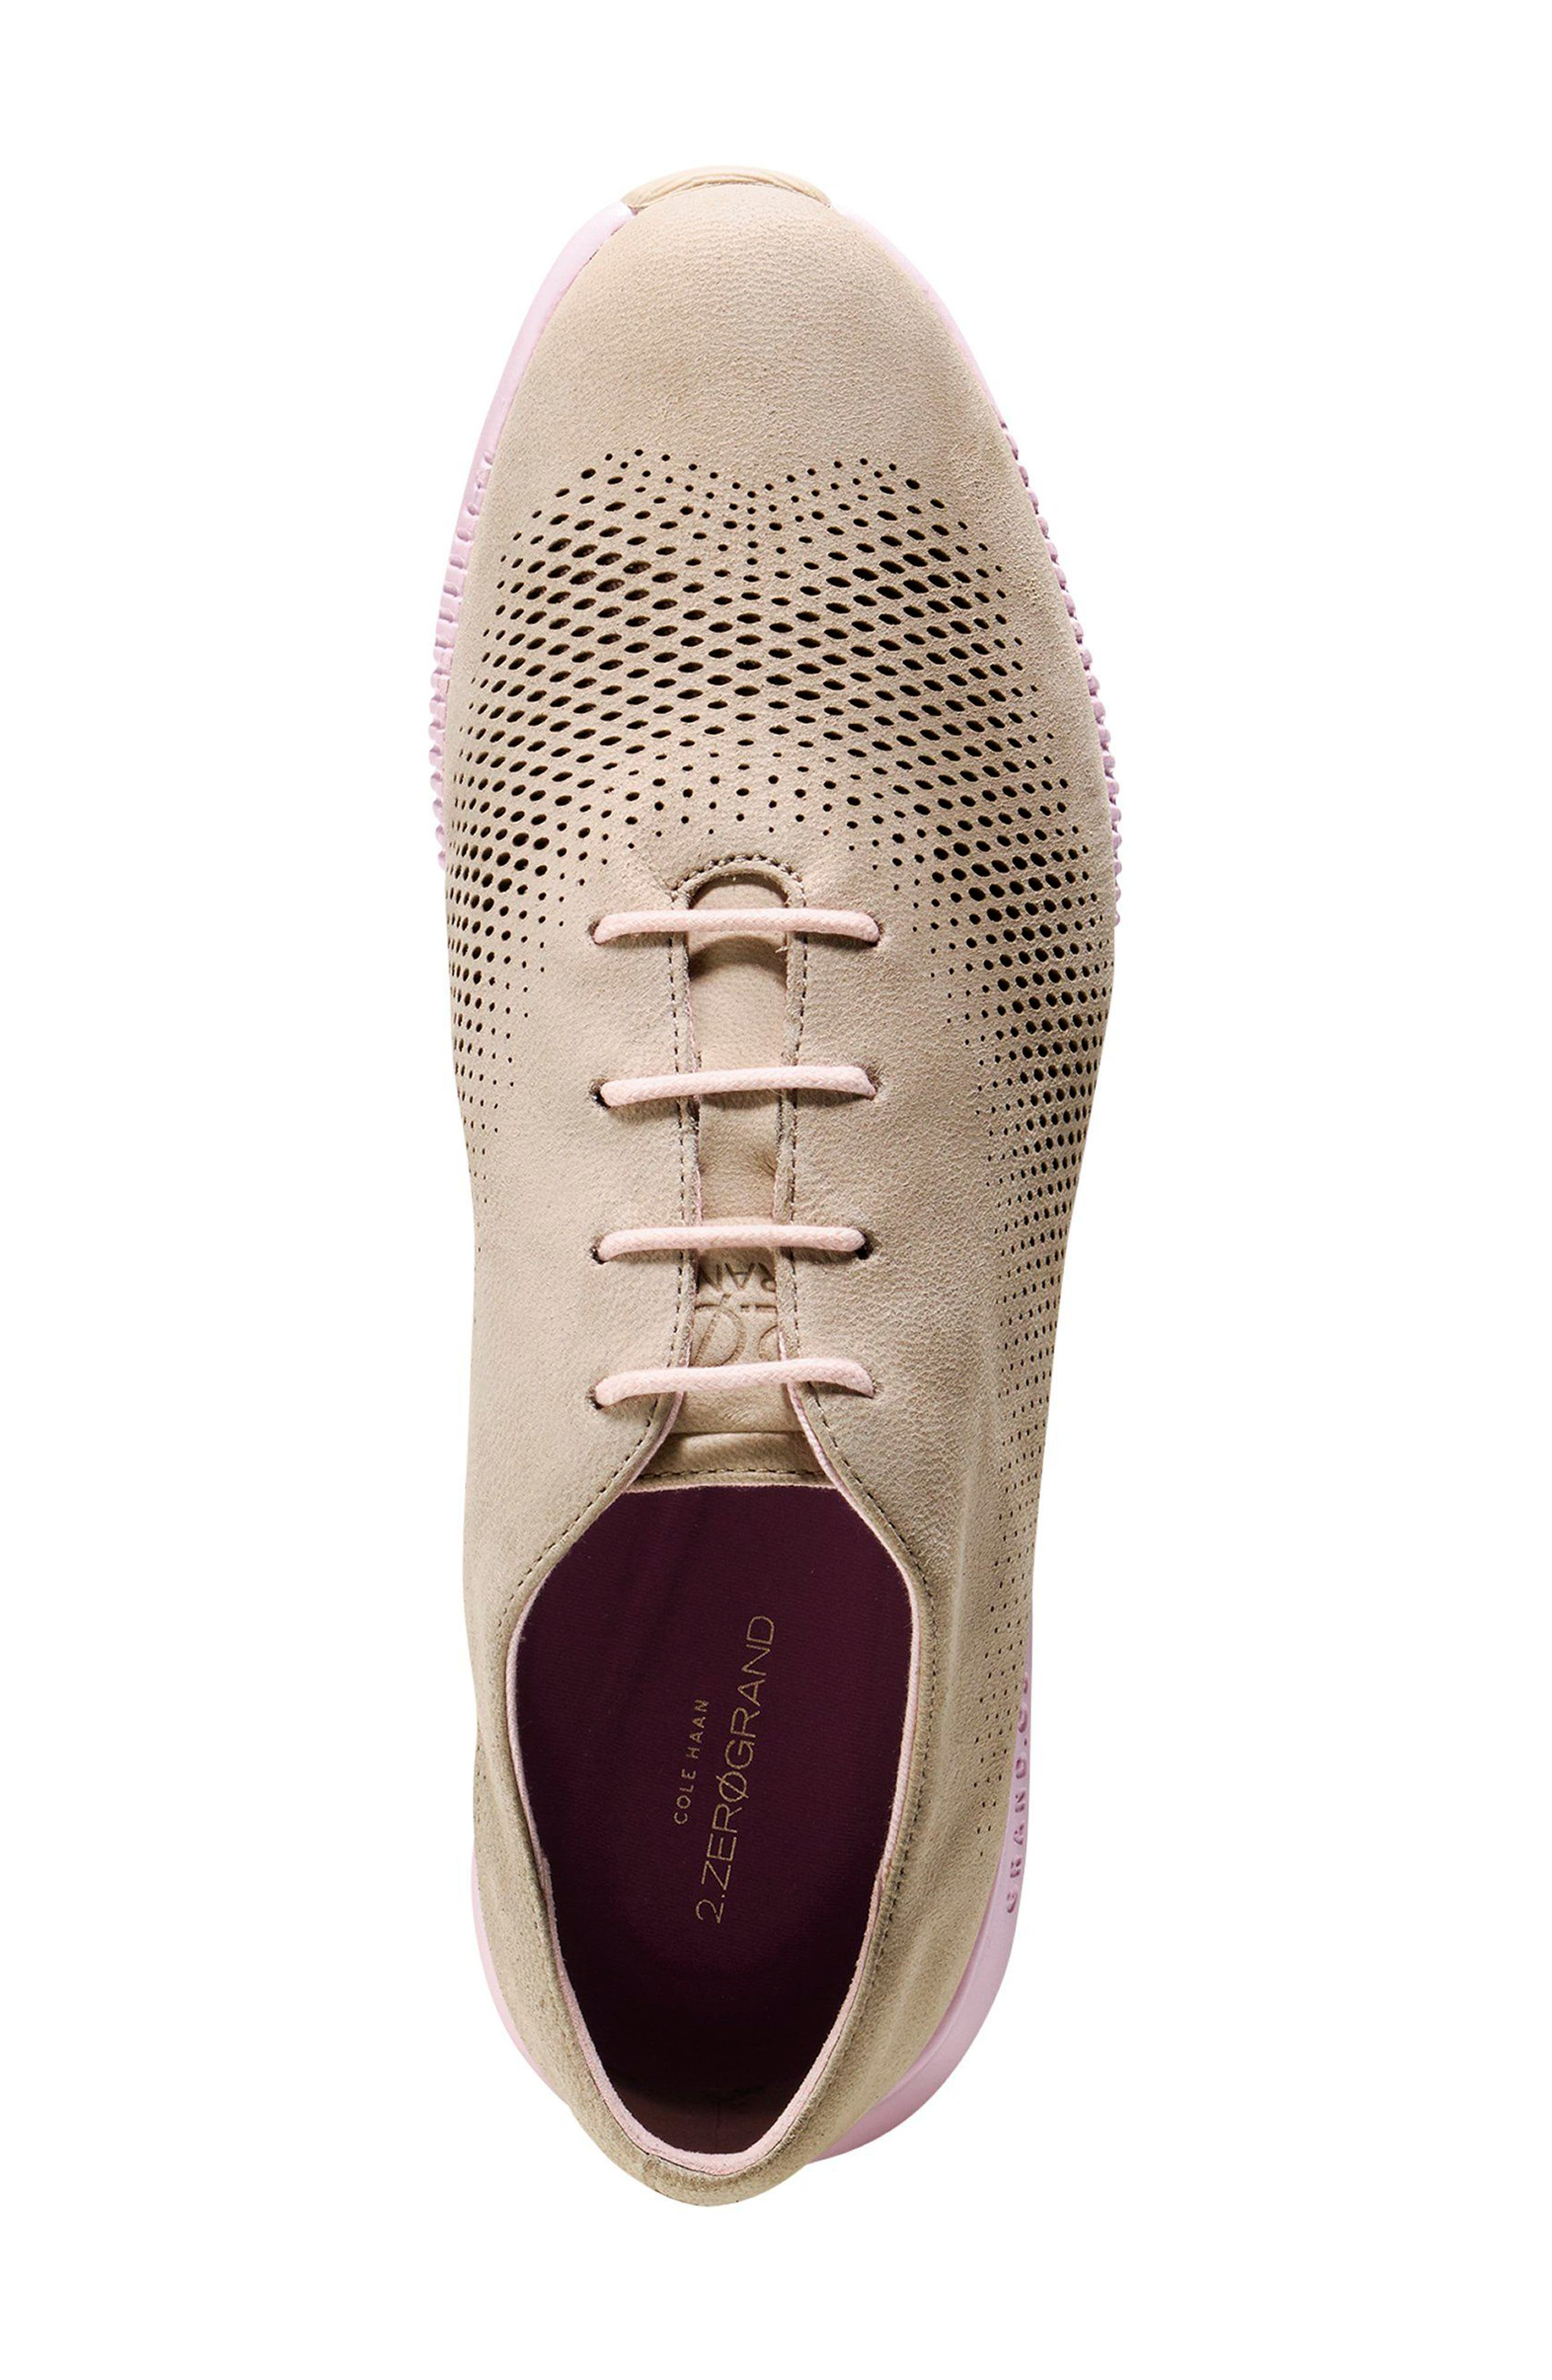 'ZeroGrand' Perforated Wingtip,                             Alternate thumbnail 4, color,                             Barley/ Pale Lilac Nubuck